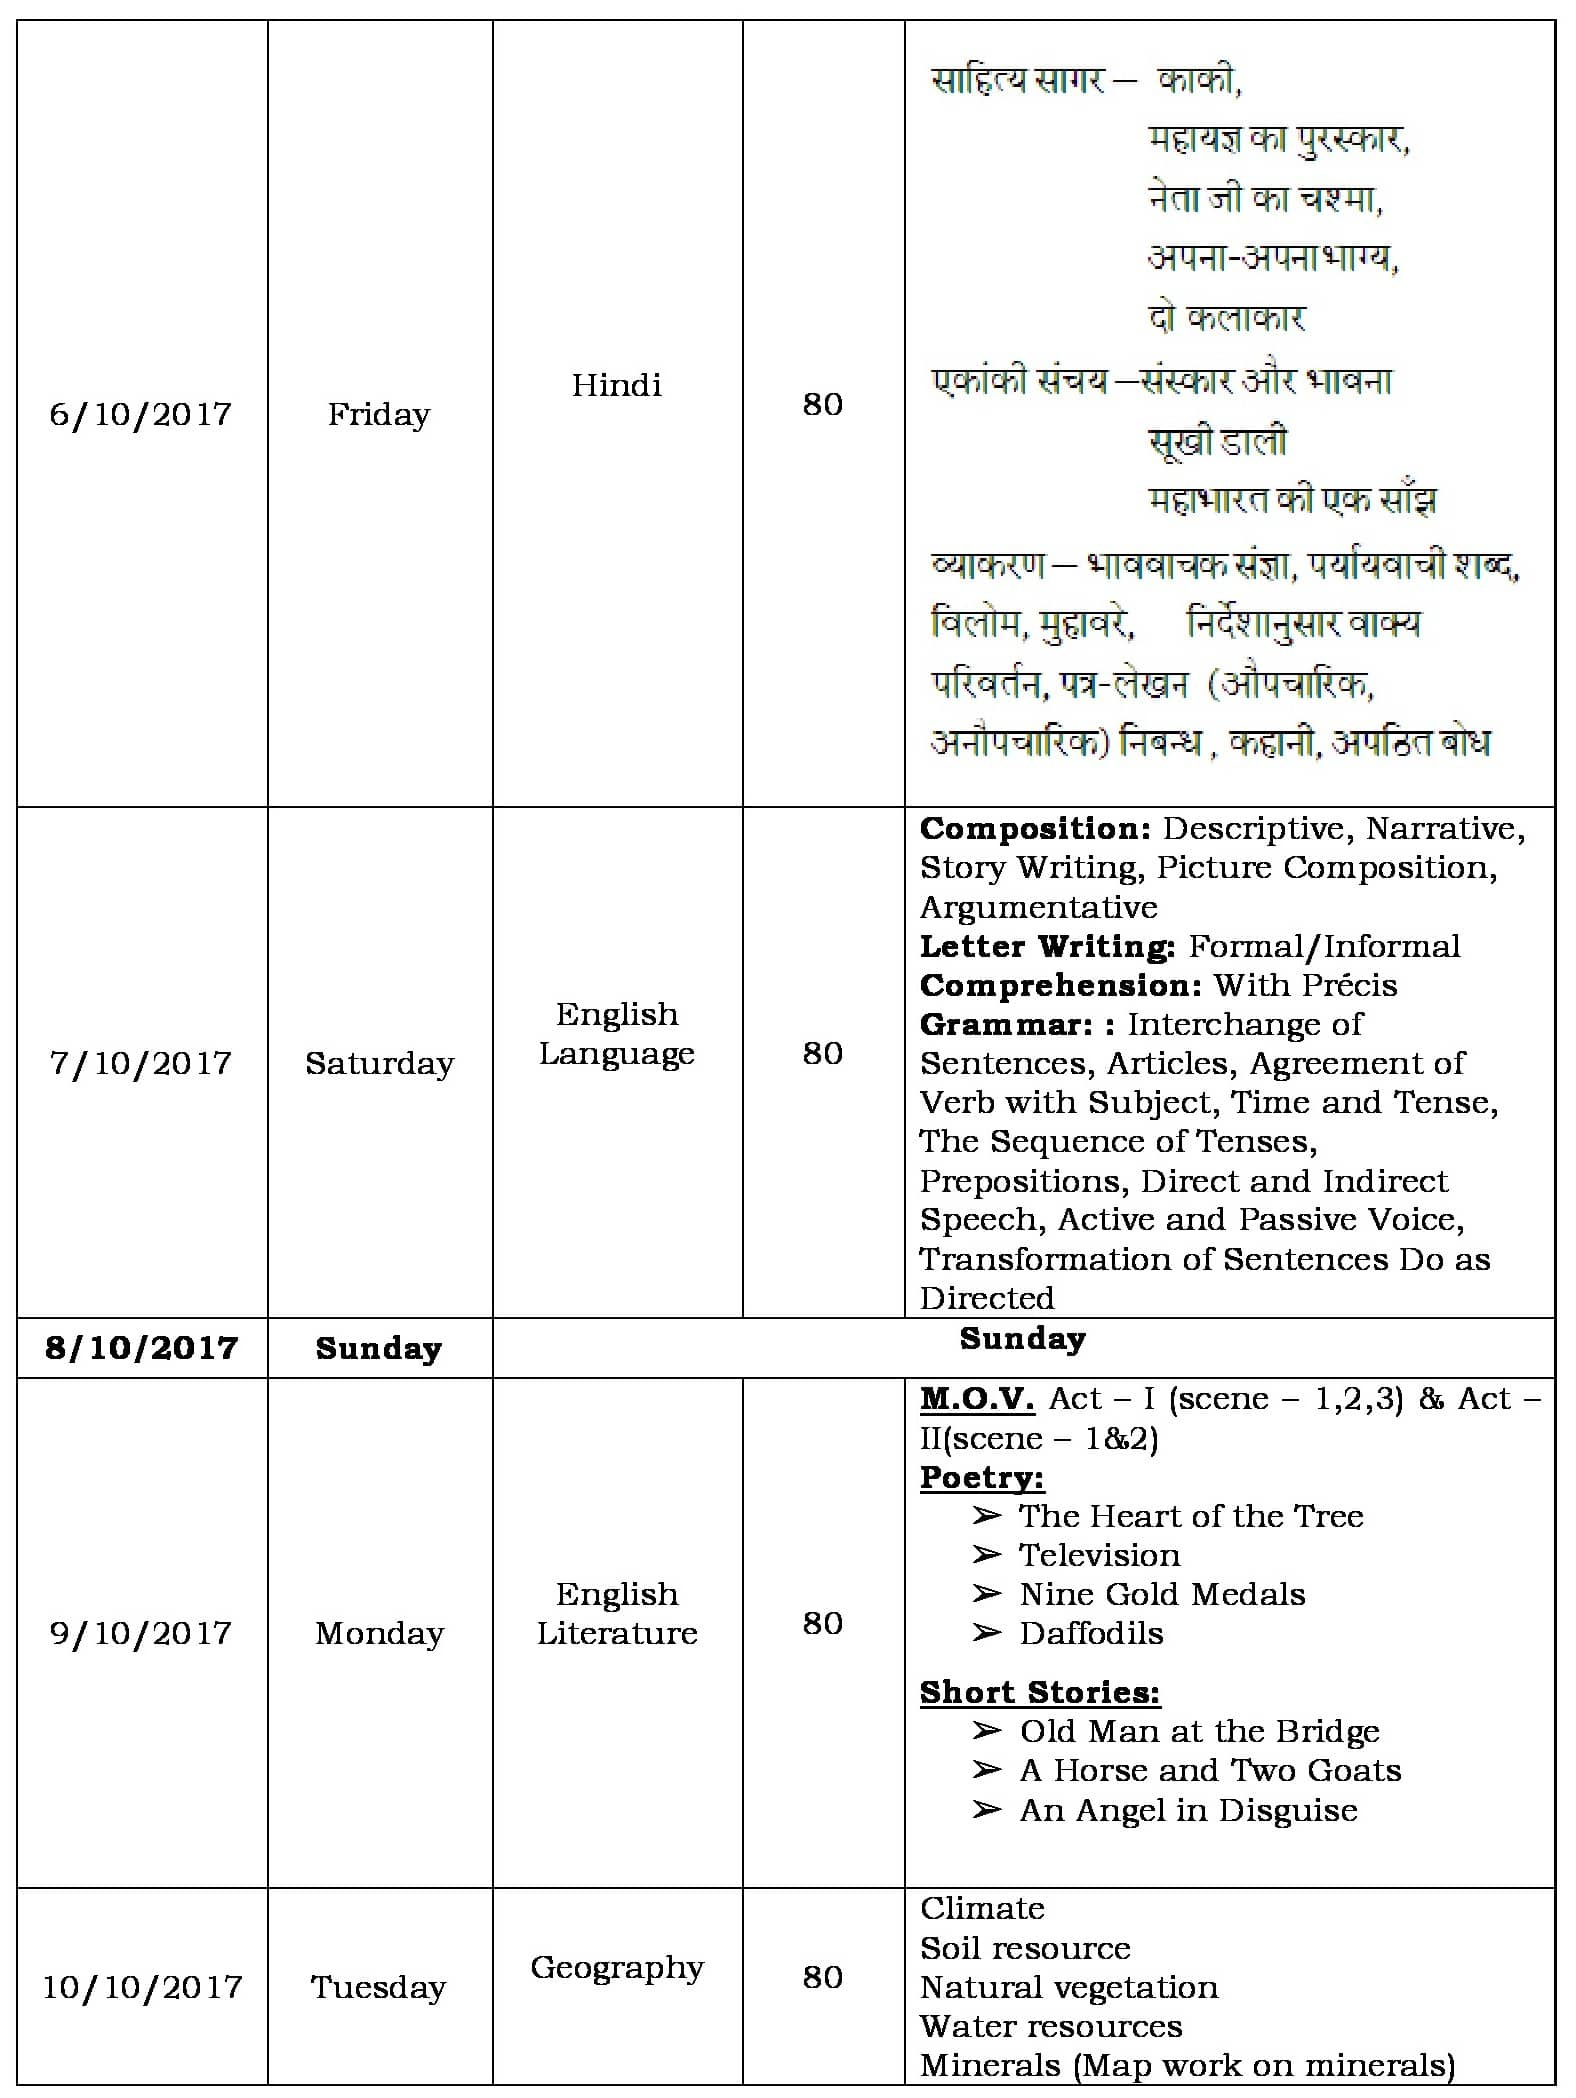 Schedule for Semester 1 Examinations 2017-18